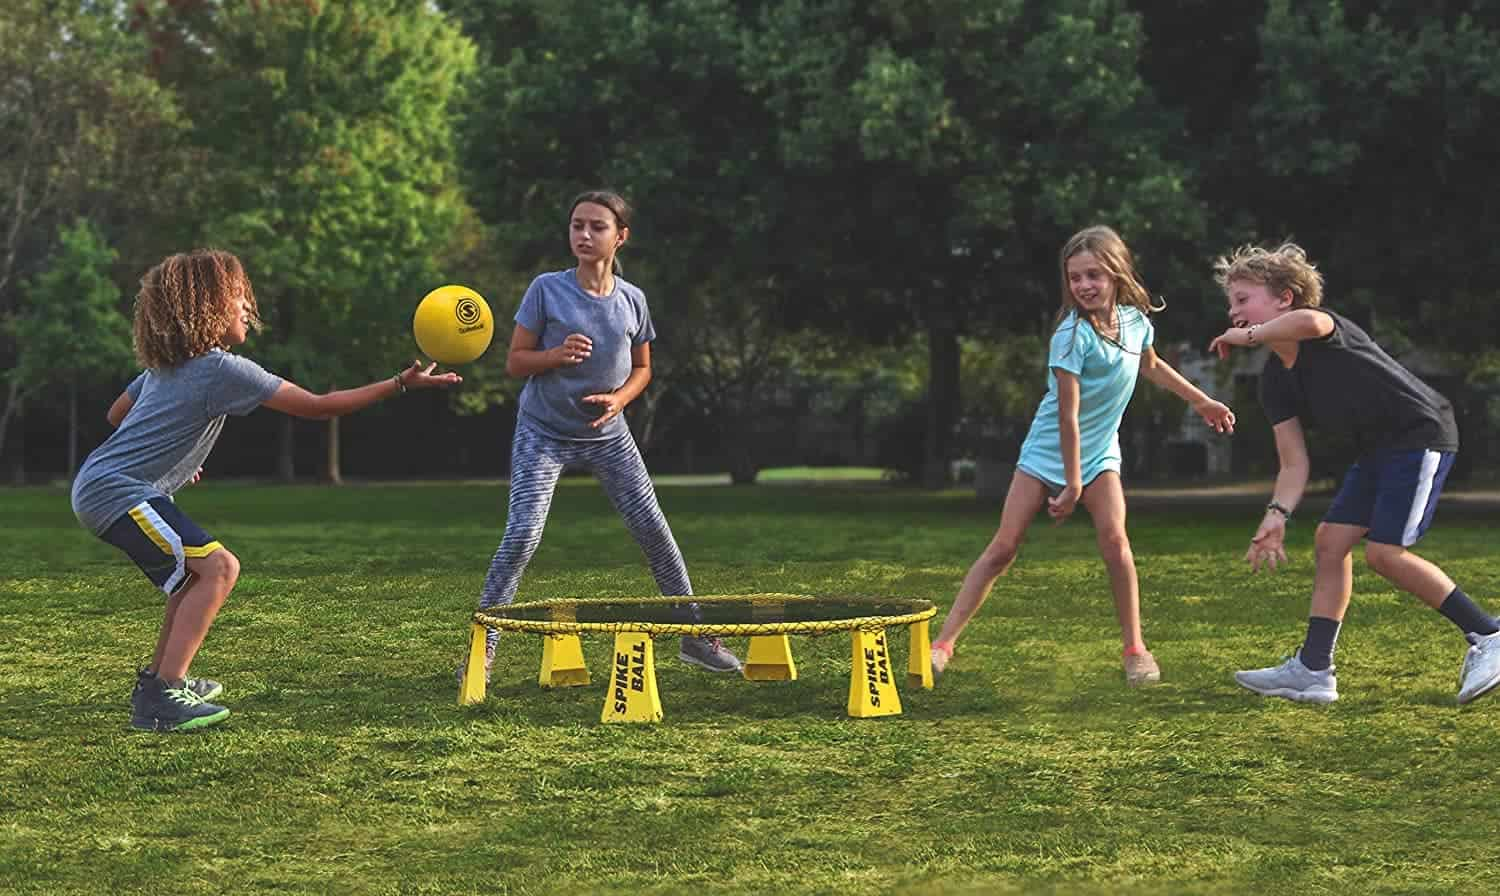 Spikeball outdoor game played by kids in a park-like setting.